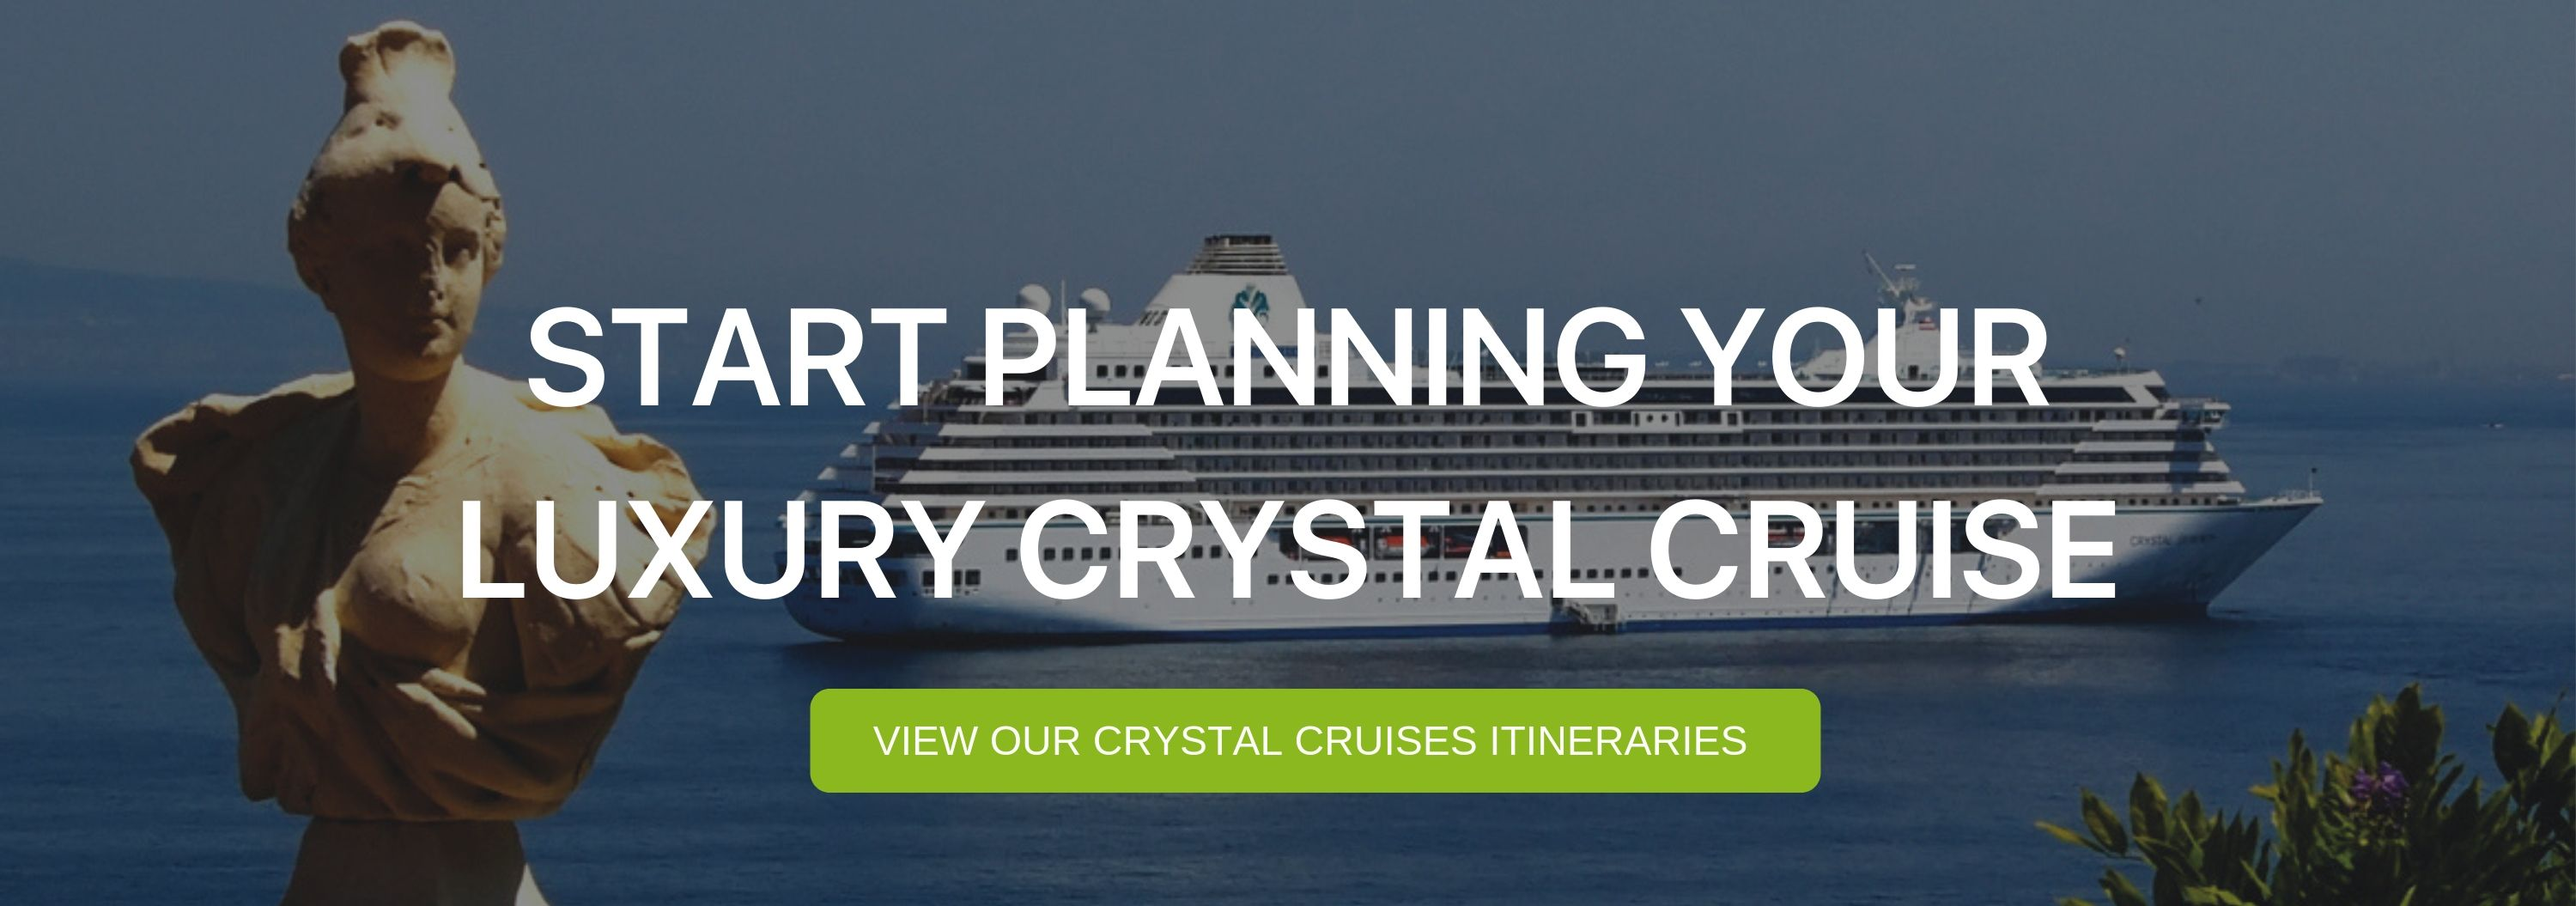 "A banner that reads ""Start Planning your Luxury Crystal Cruise"""